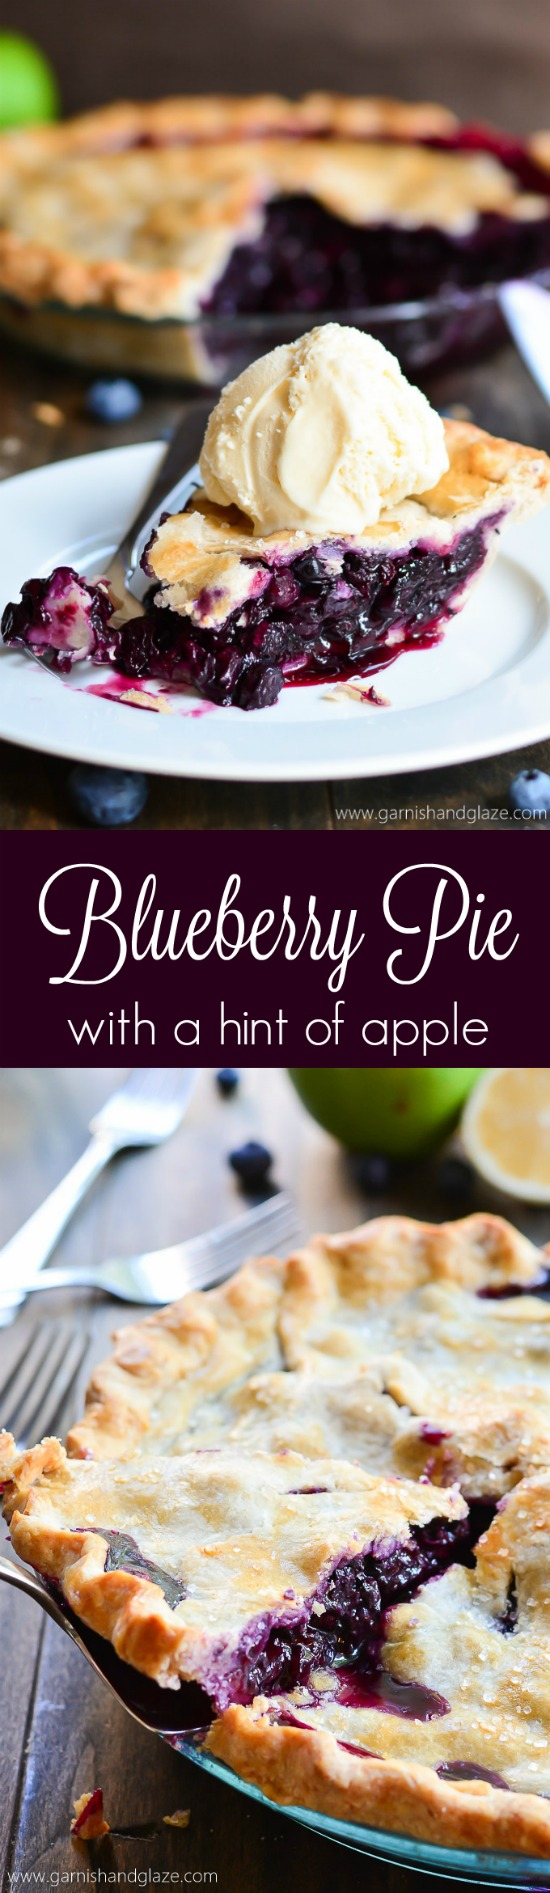 Simple blueberry pie made with fresh berries and a grated apple.